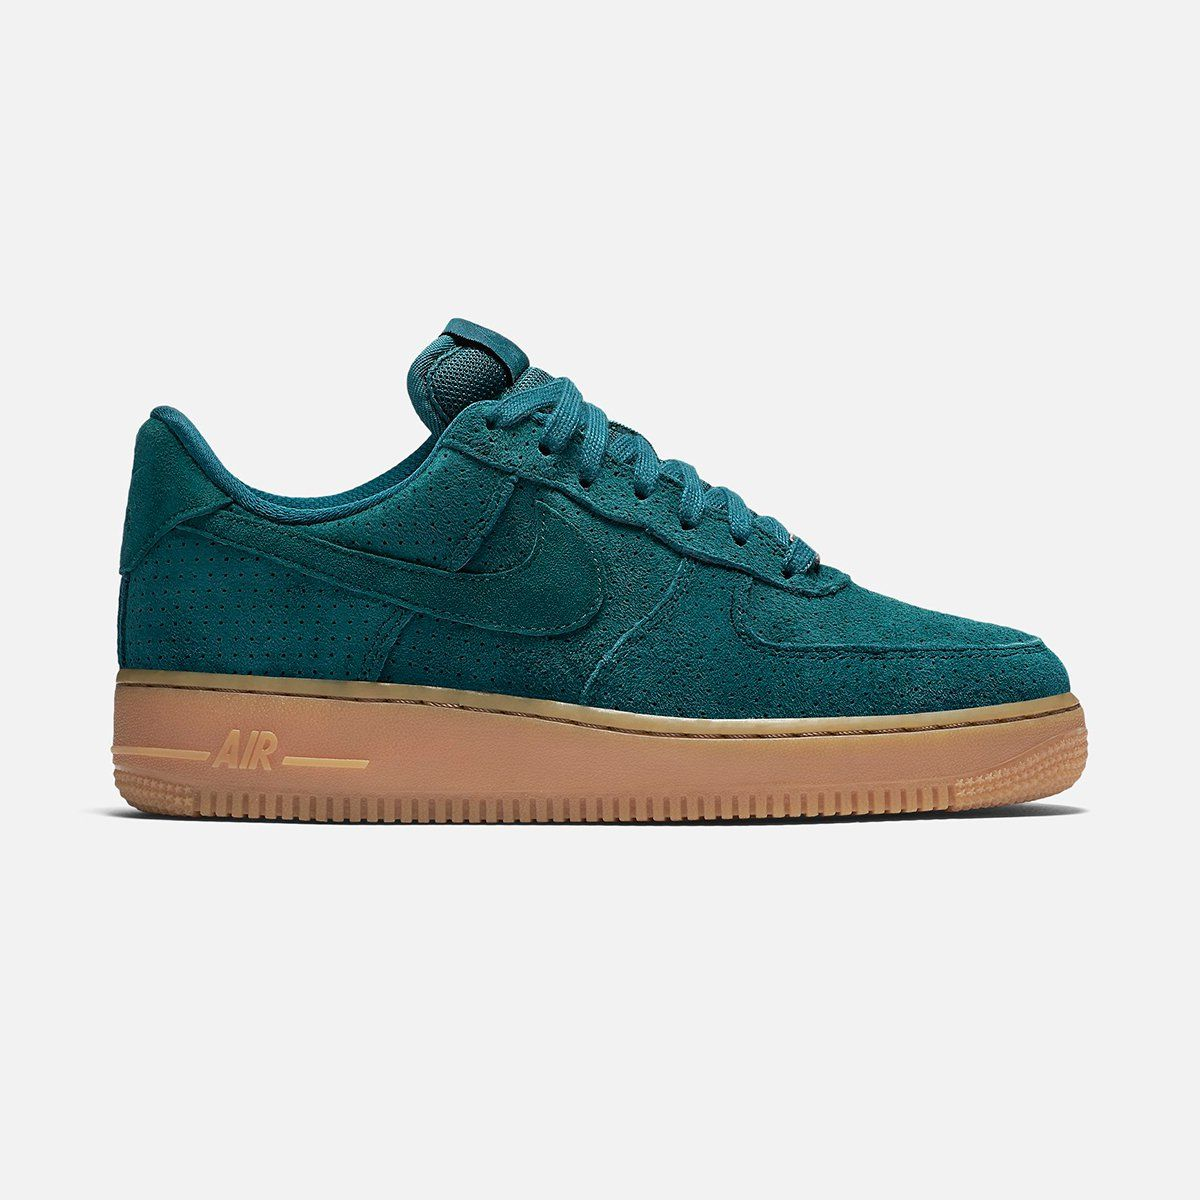 The Nike Air Force 1 '07 Suede Women's Shoe revamps the 1982 basketball  original with